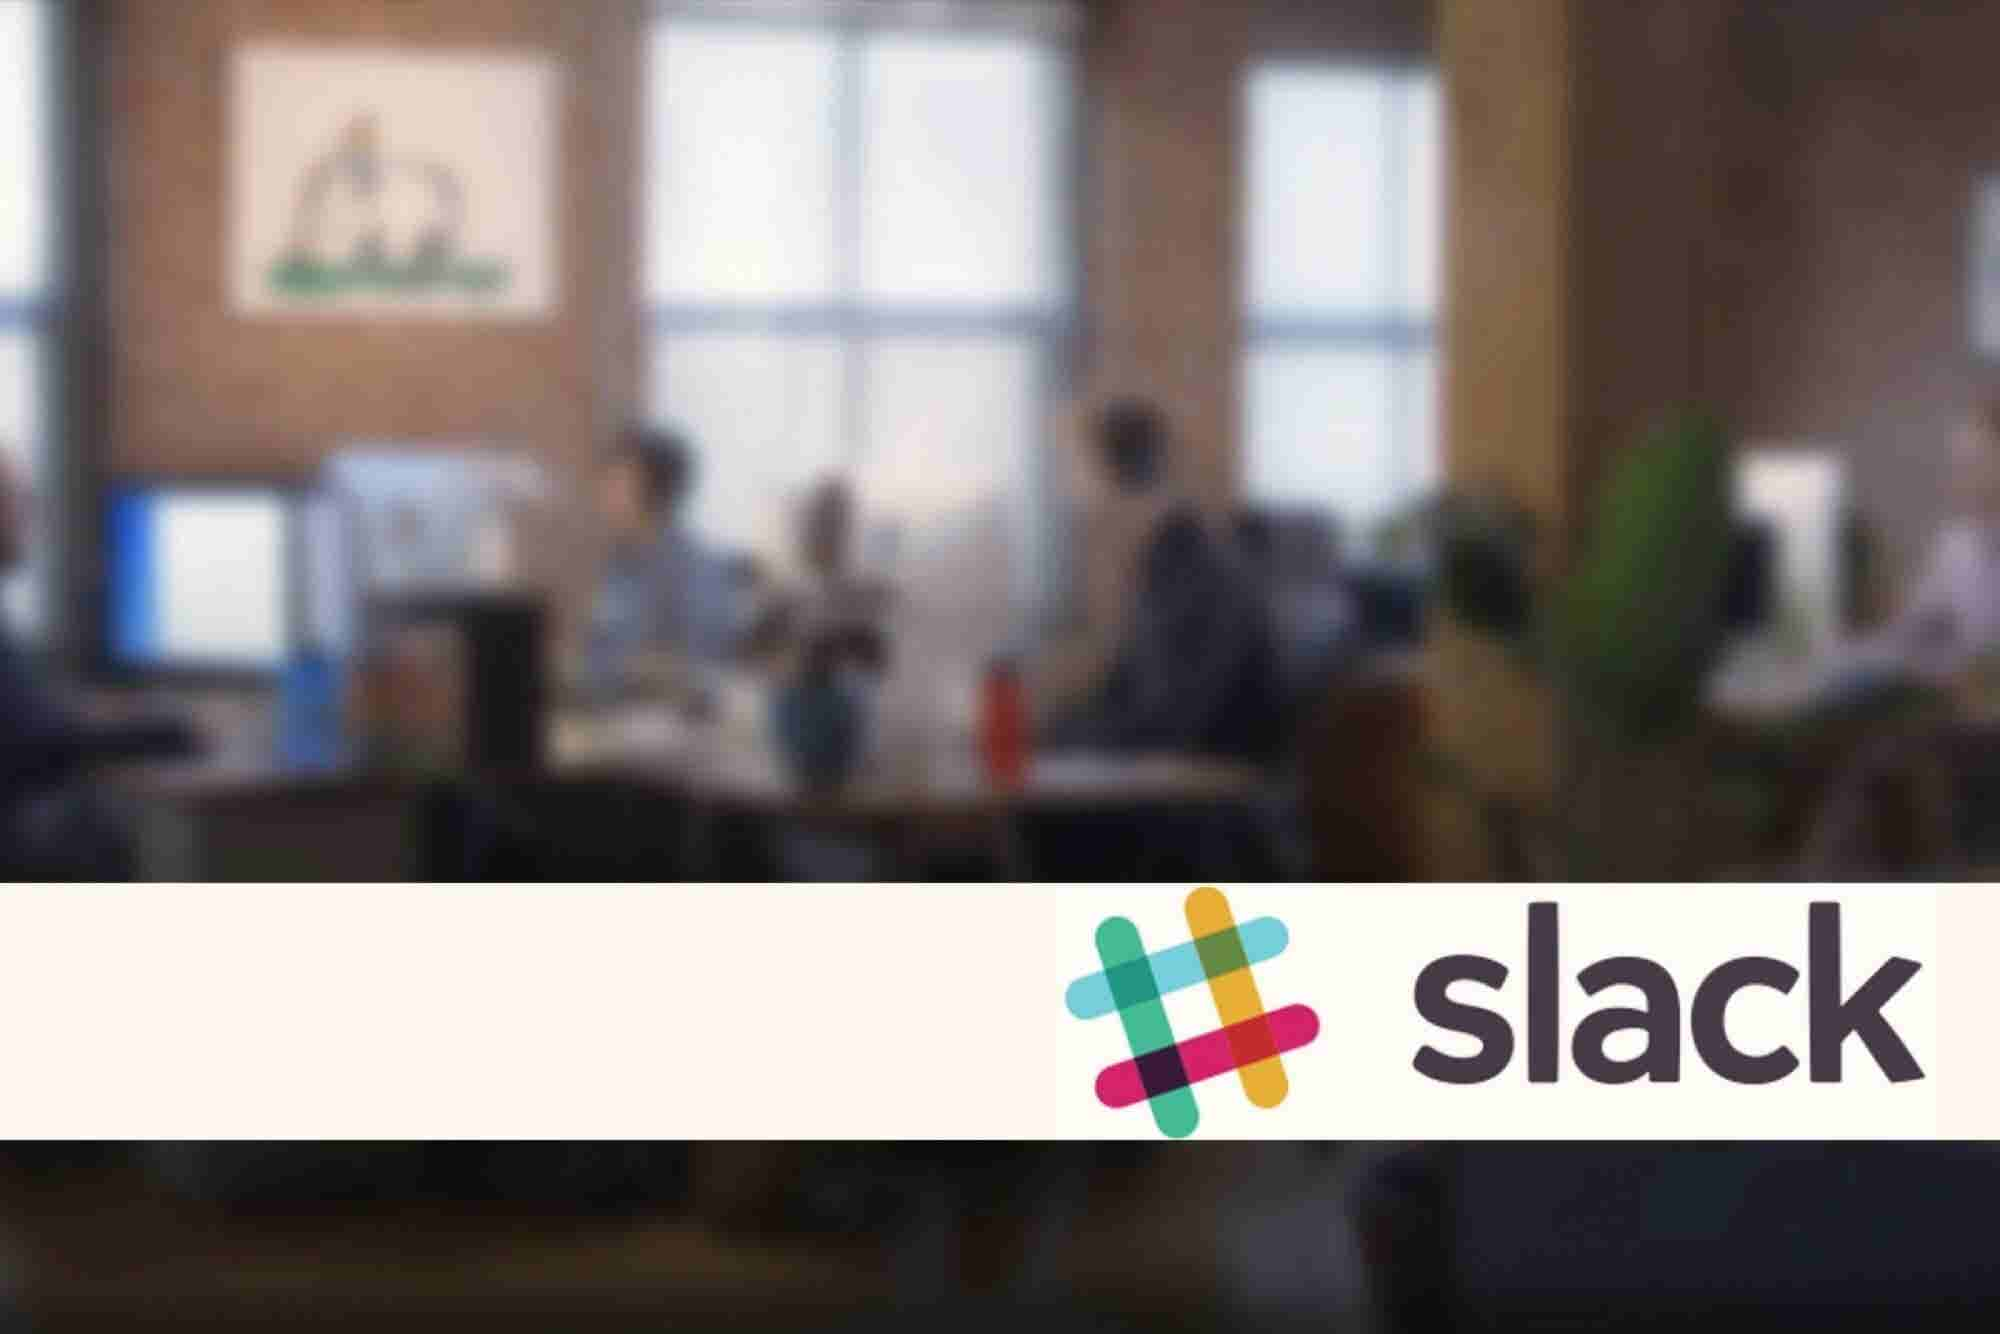 Slack, the Popular Messaging Platform, Is Experiencing an Outage